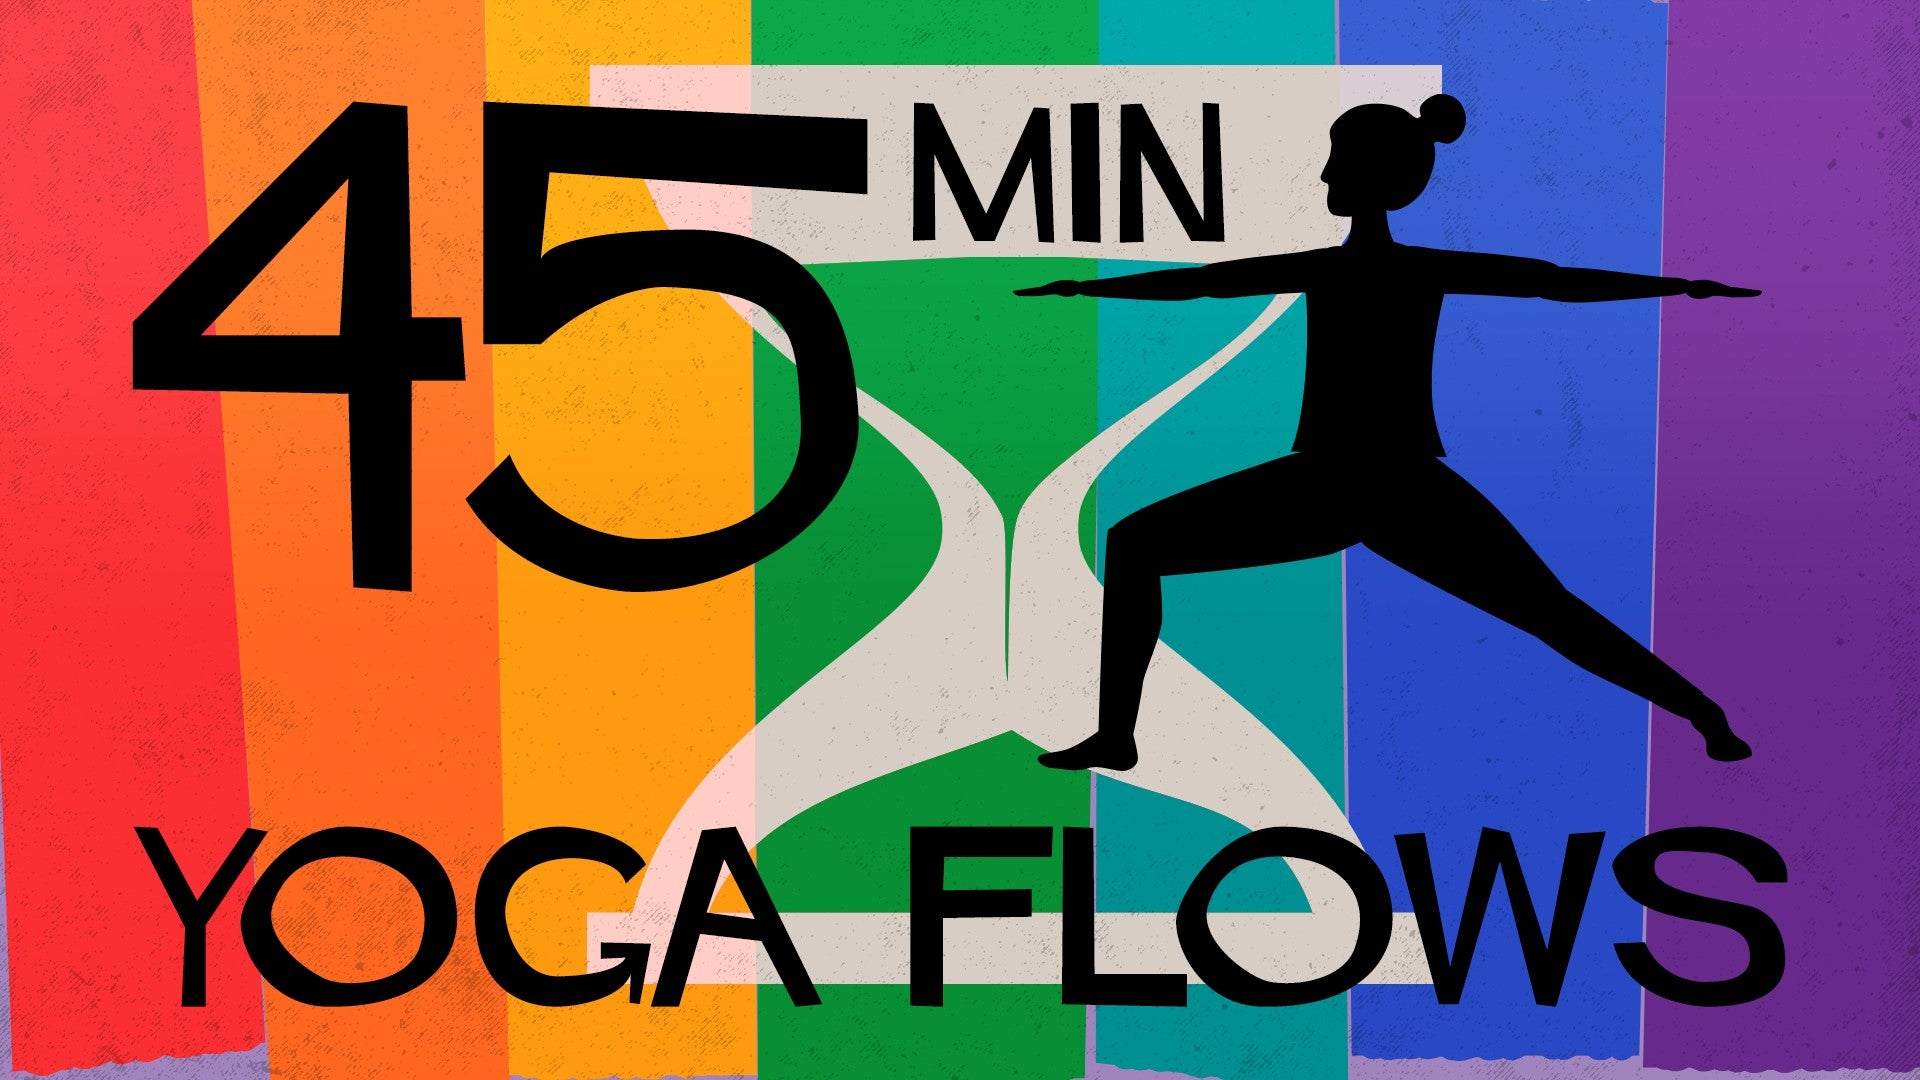 45 Minute Yoga Flows Artwork